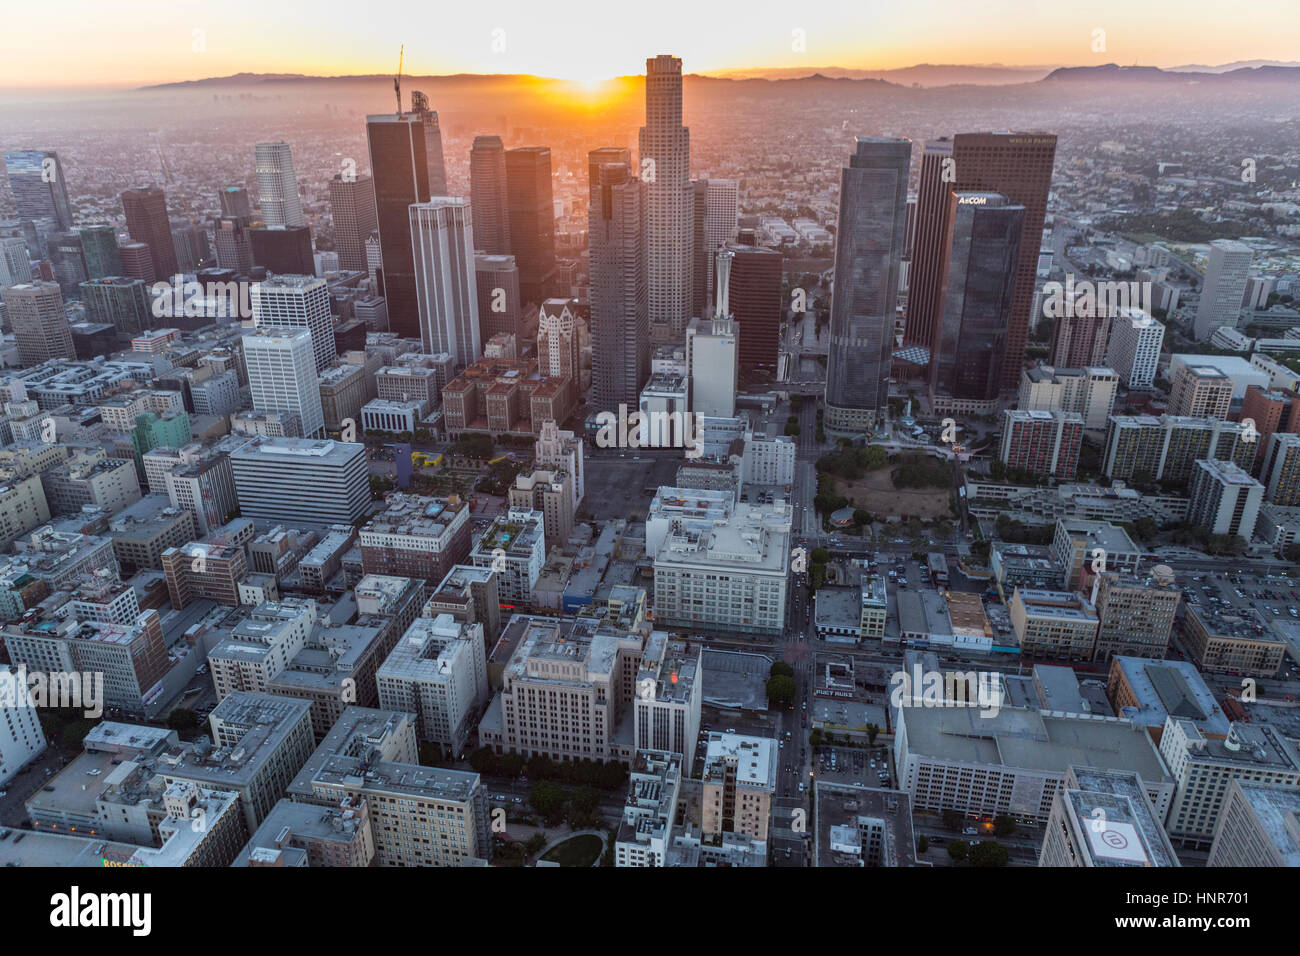 Los Angeles, California, USA - July 21, 2016:  Downtown Los Angeles urban sunset aerial. Stock Photo